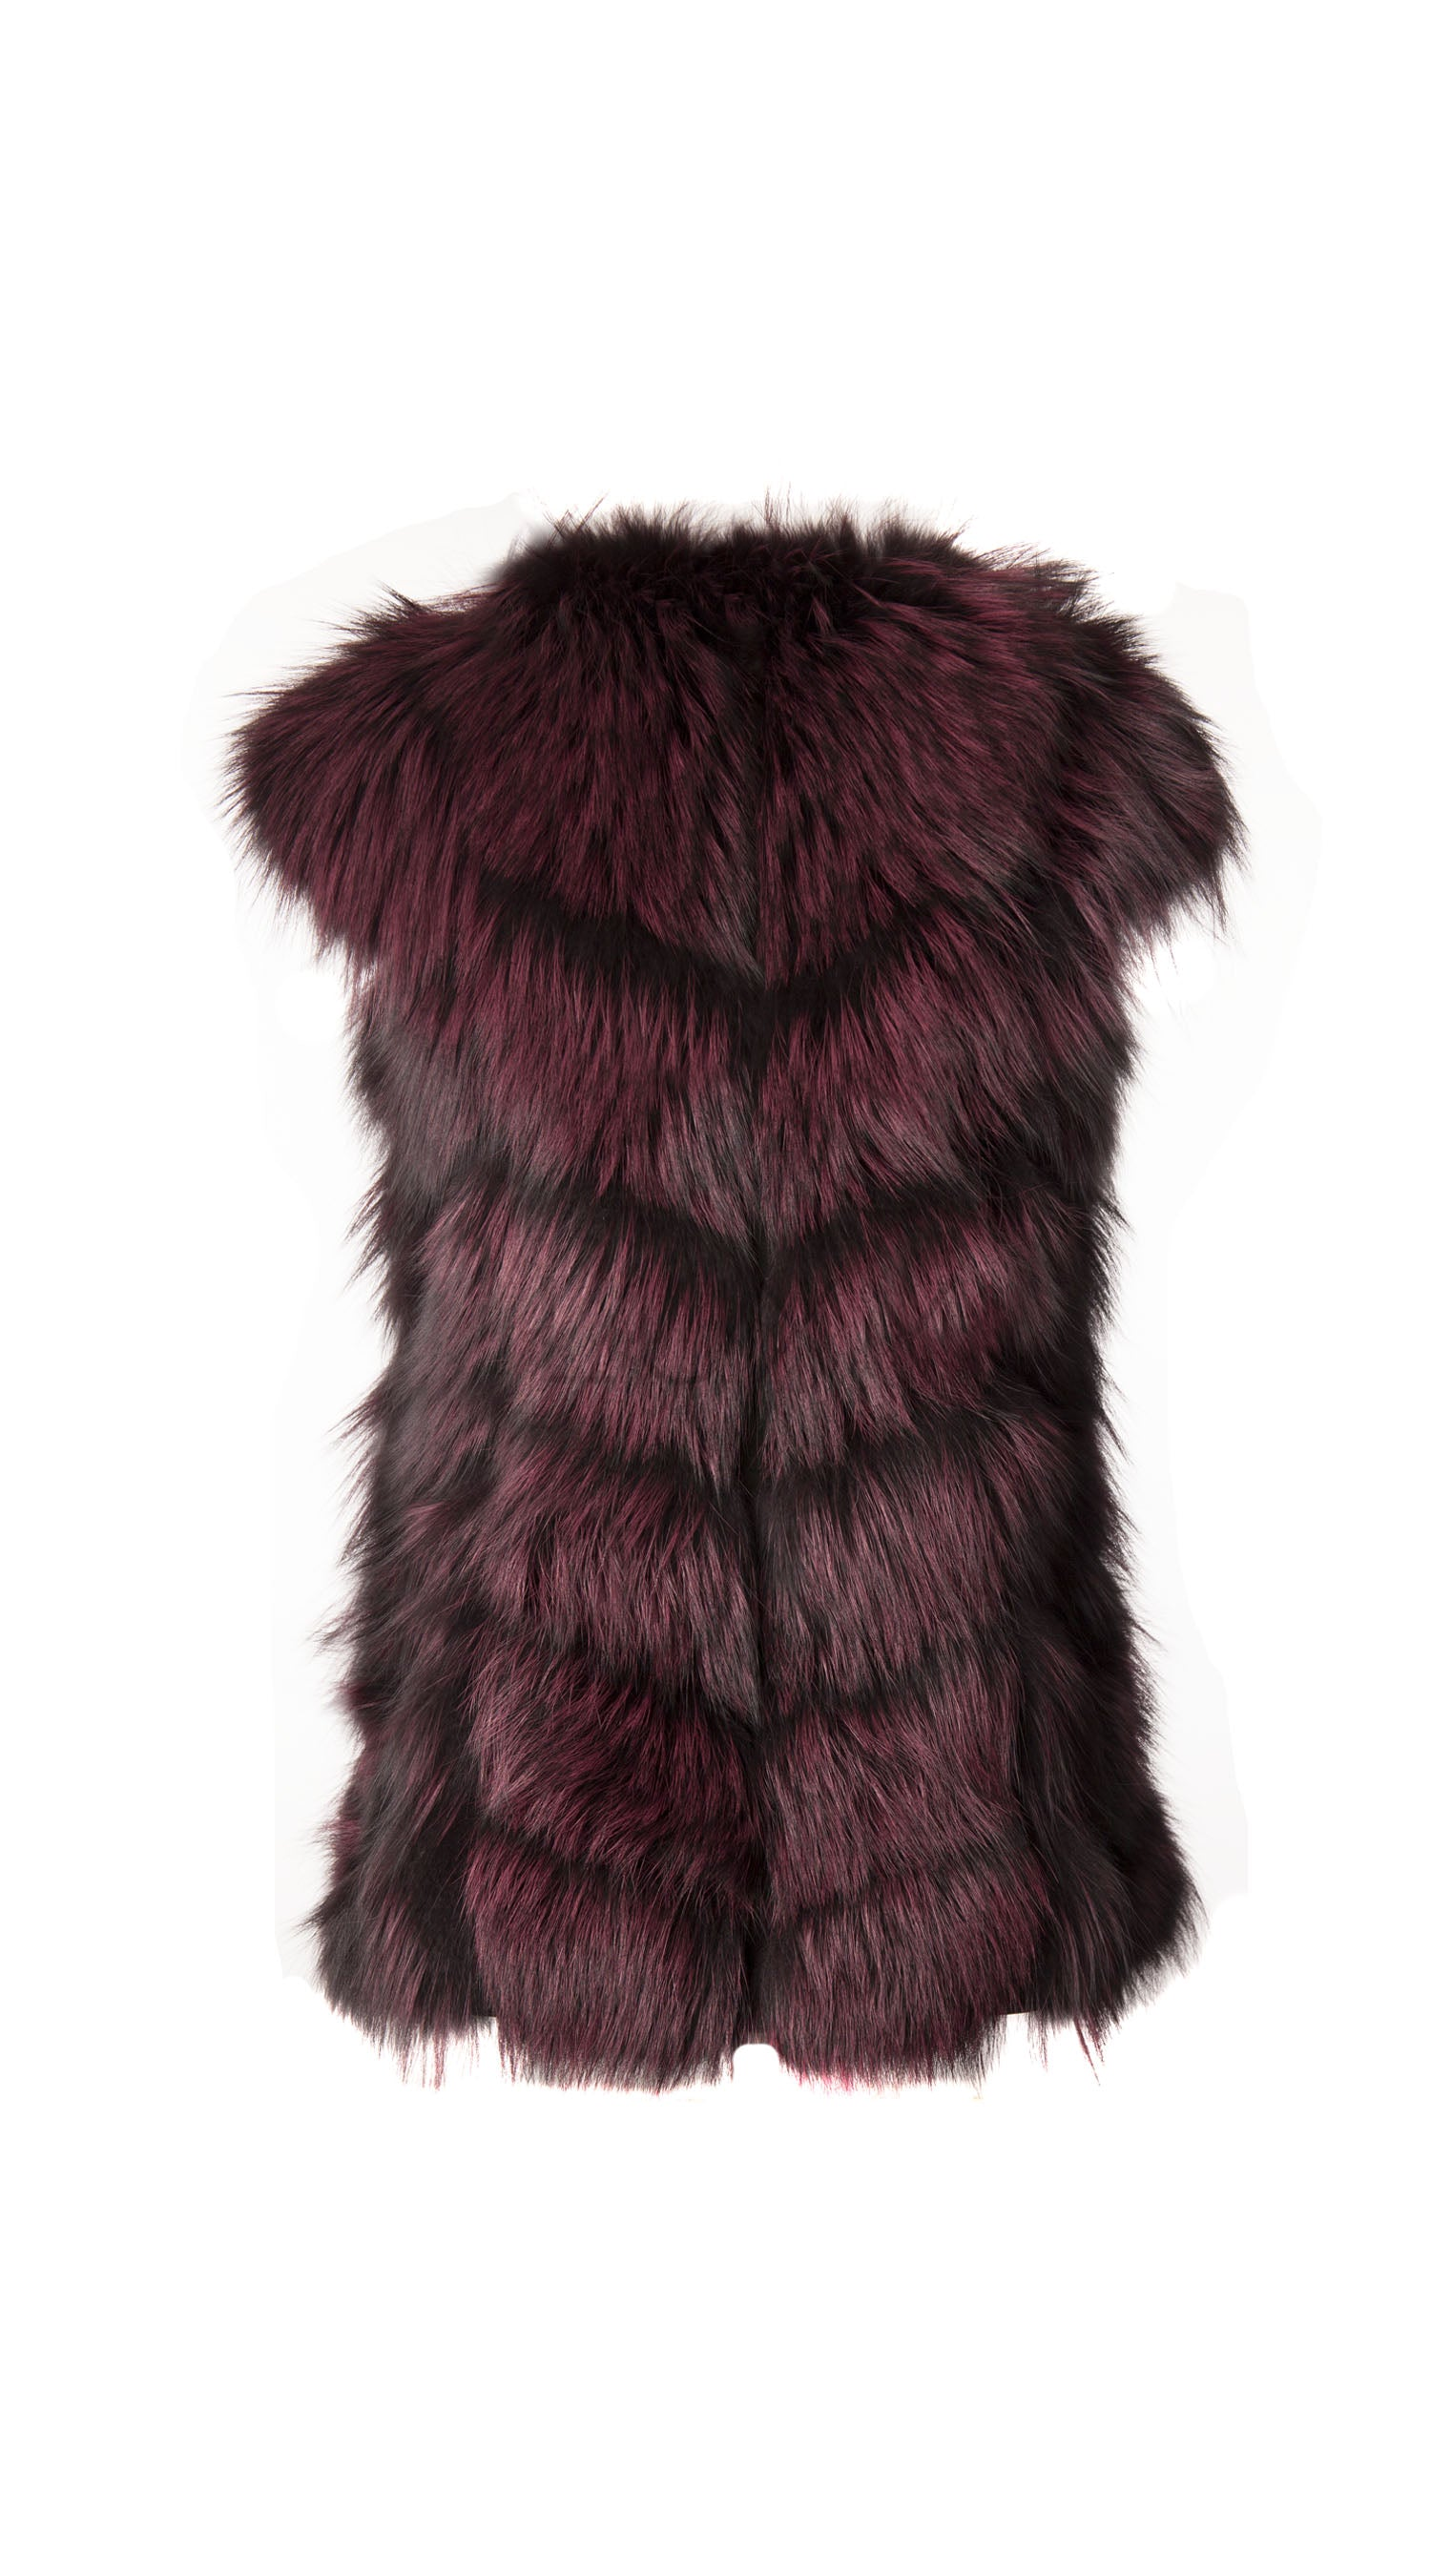 Luxy Arctic Fox Fur Gilet - Black x Wine